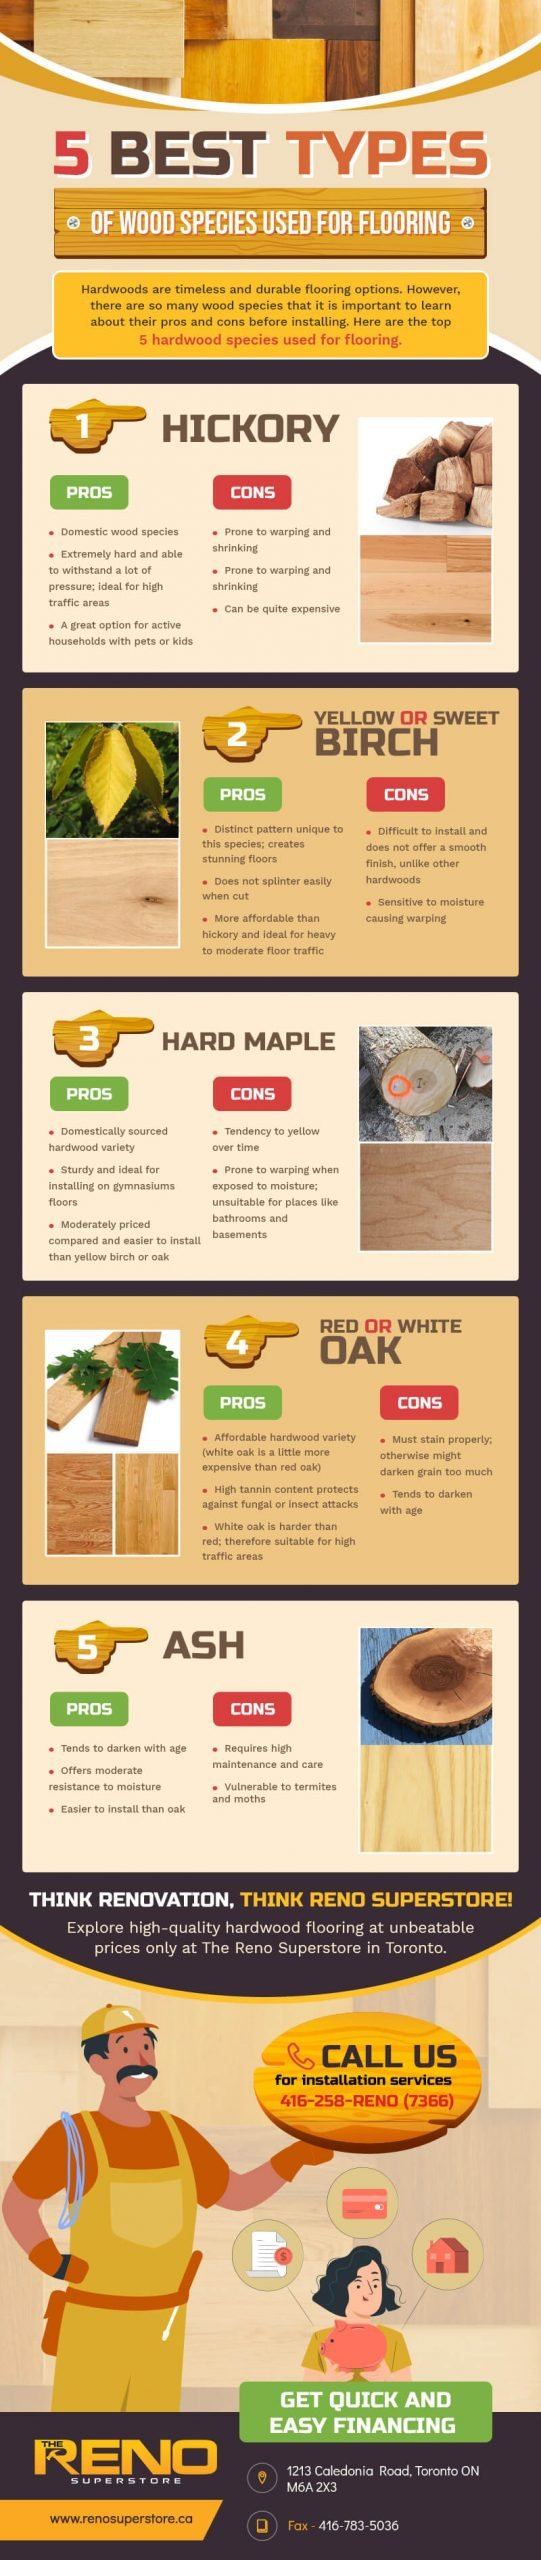 5 Types of Wood Used For Flooring